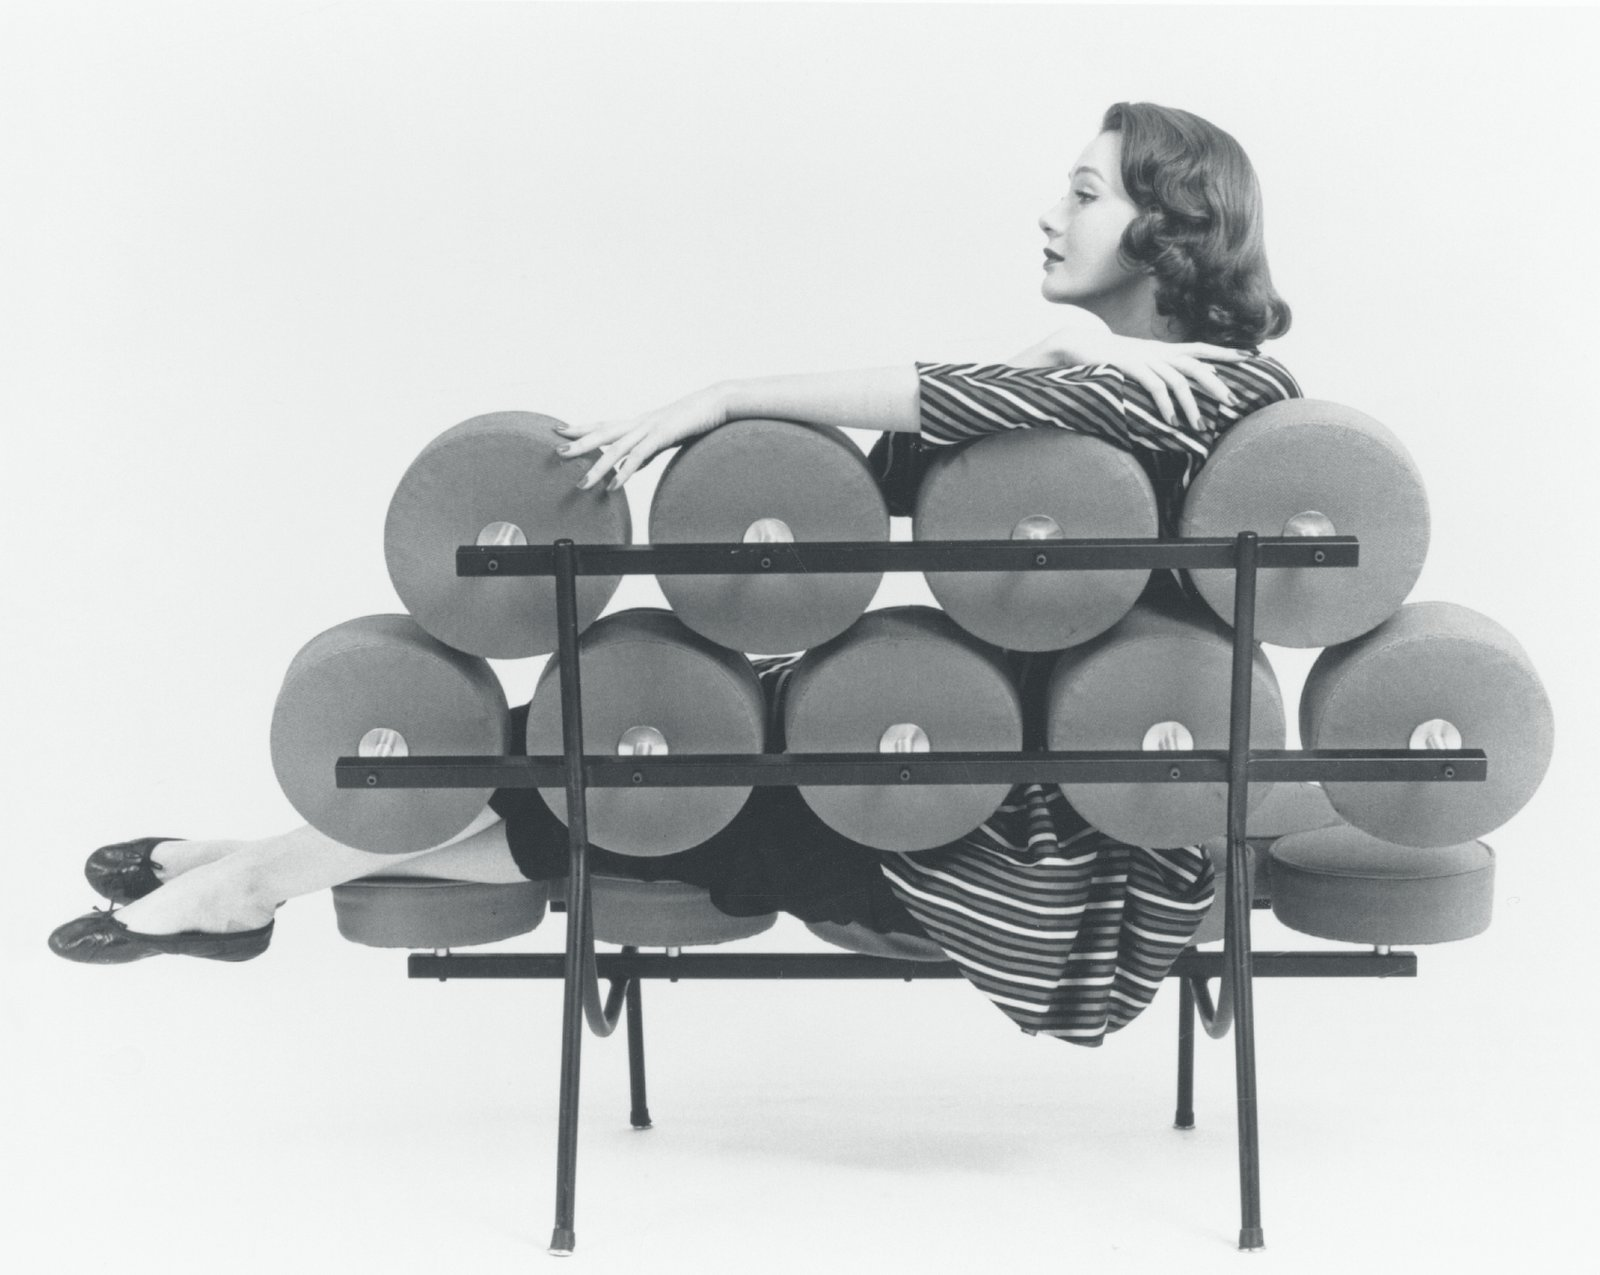 While not the most successful sofa in terms of quantity sold, the Marshmallow Sofa almost immediately became an icon of modern furniture design when it debuted in 1956. The  piece was originally conceived by Irving Harper, a staff designed at George Nelson, who wanted to use new technology that would injection-mold the cushions that essentially formed soft discs attached to a metal frame—a far cry from the chunky, bulky traditional sofas. However, the manufacturing process was unable to produce satisfactory results, and so the team resorted to discs that were plywood-backed and hand-upholstered, resulting in a very expensive—but eye-catching—piece . (The Marshmallow Sofa: promotional photograph featuring George Nelson and Associates receptionist Hilda Longinotti, 1956.)